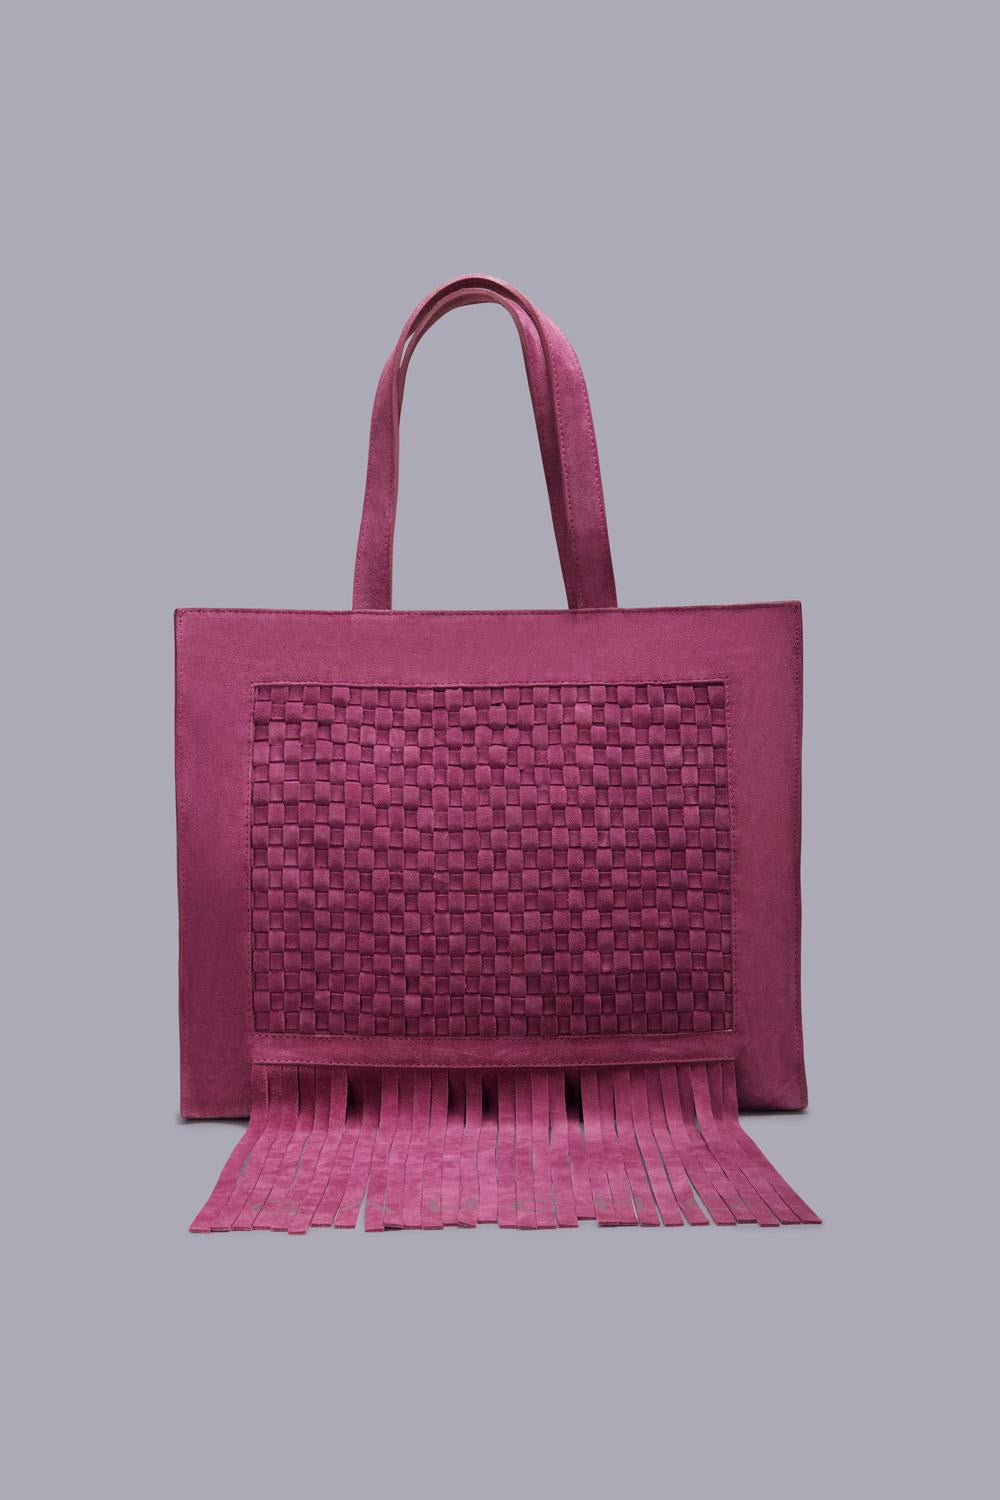 Lujan Hand-Braided Shopper Bag in Fuchsia